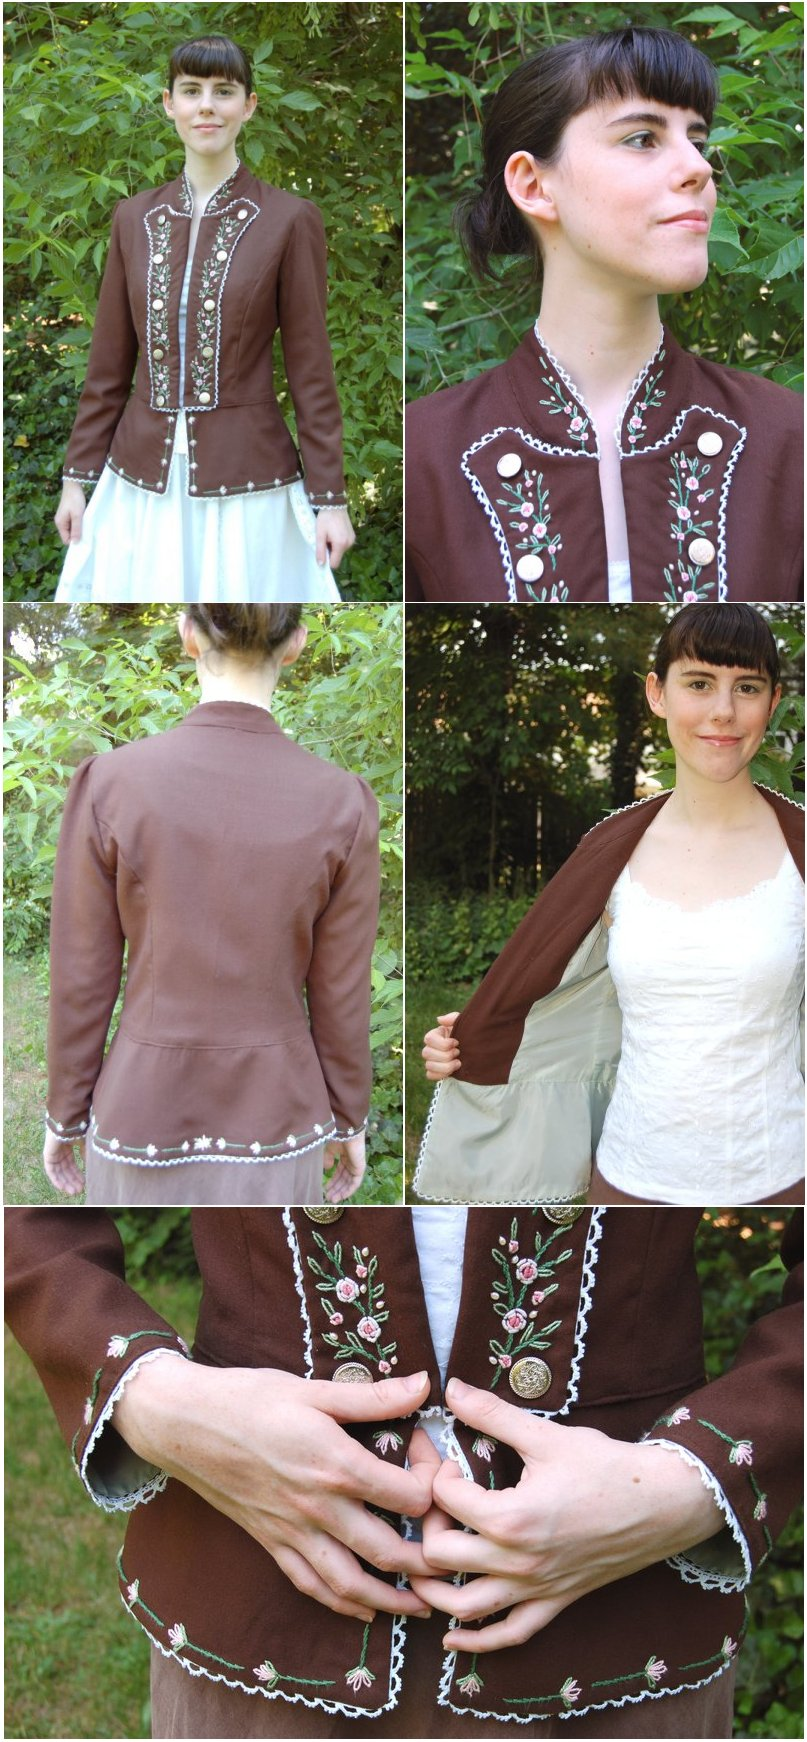 Rosebud Jacket by sakurafairy